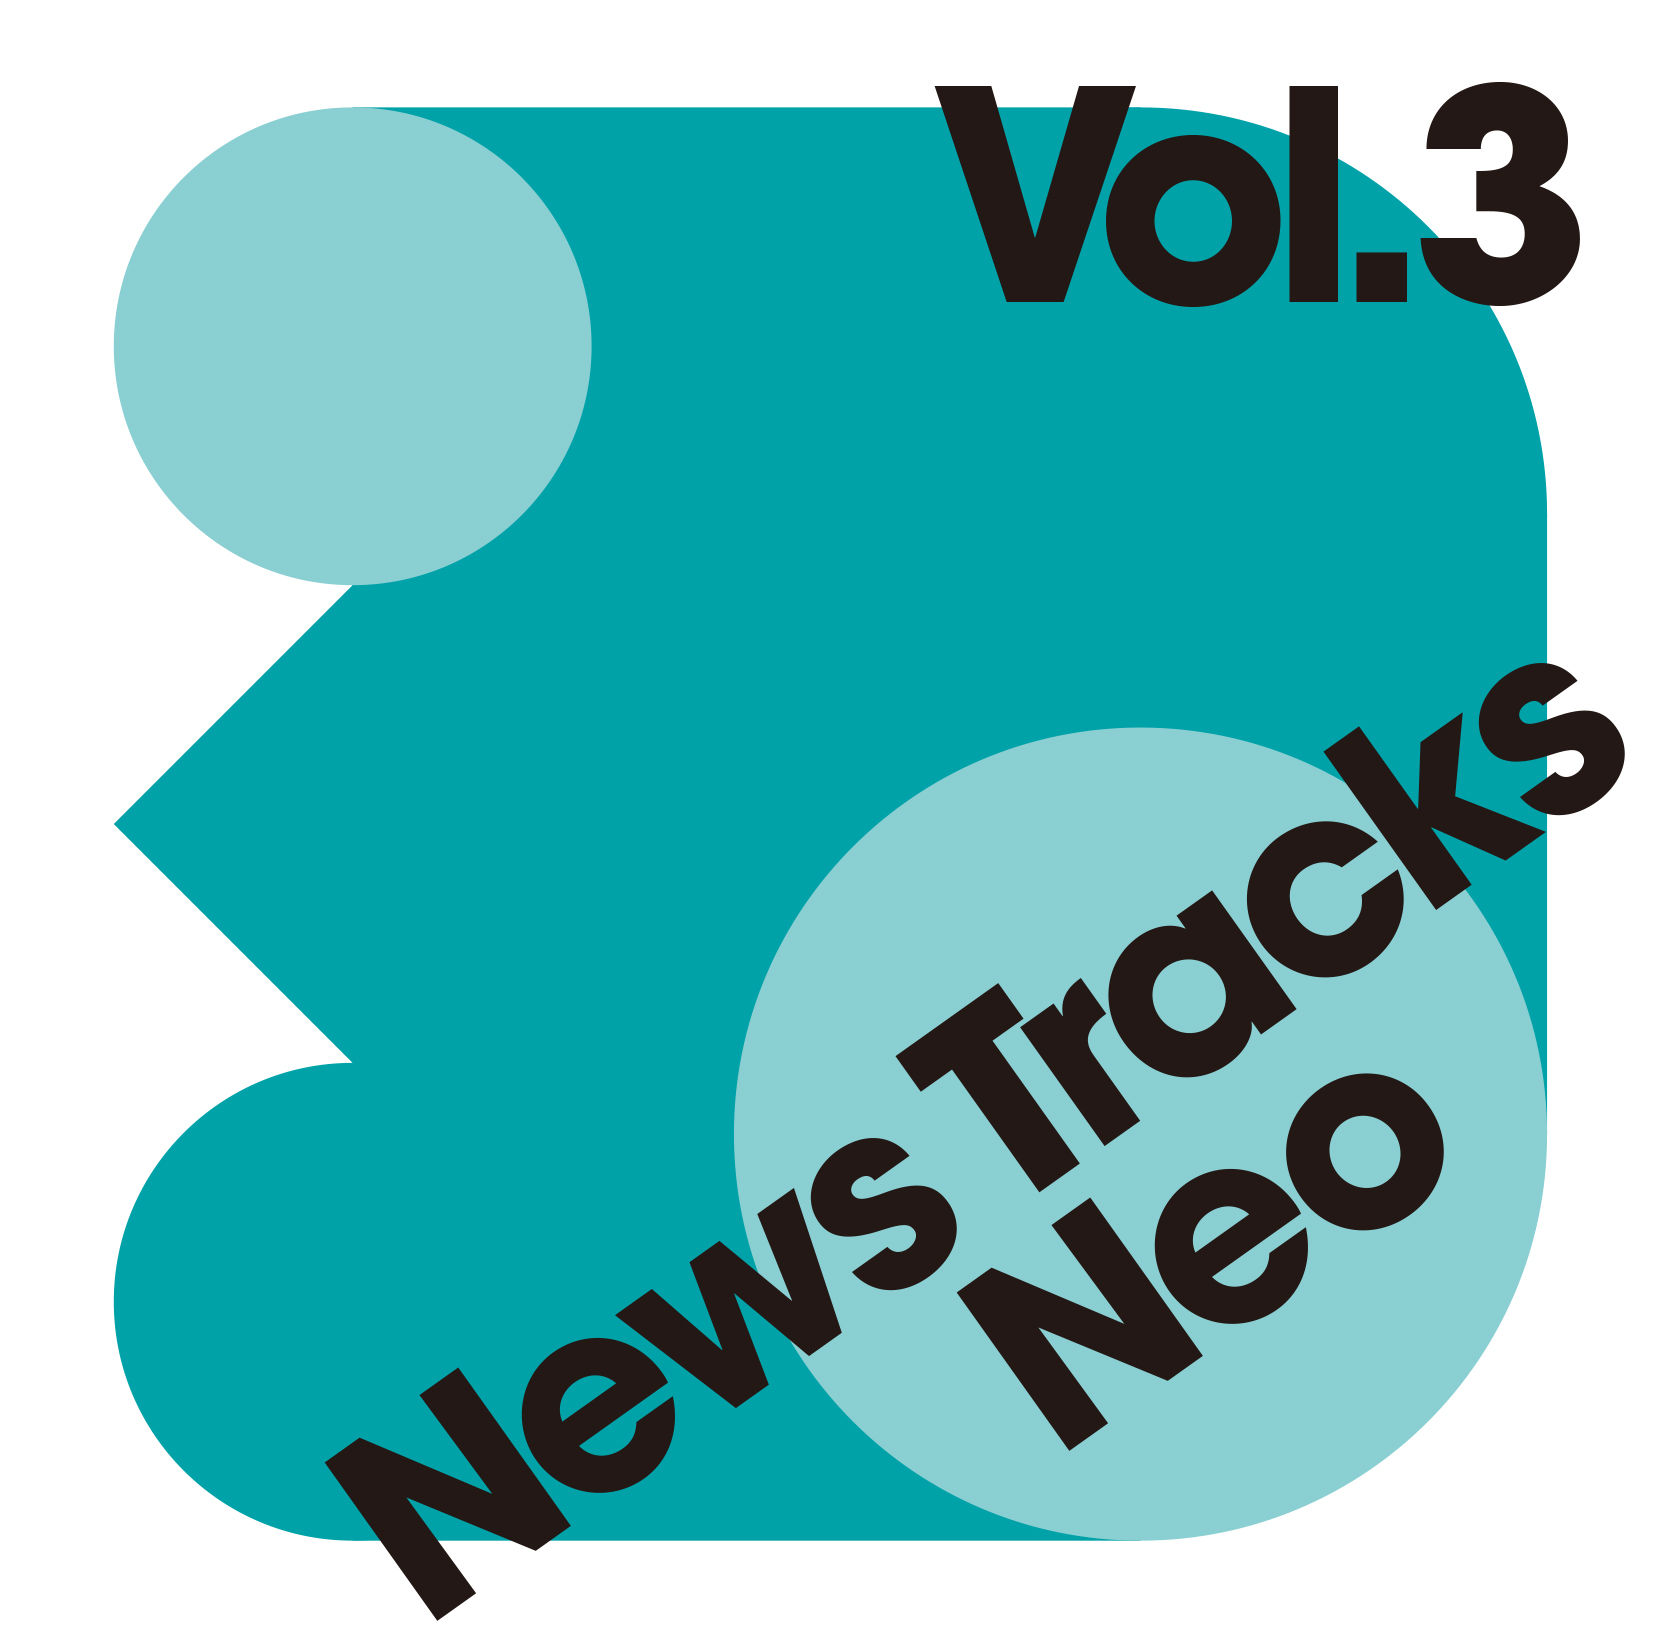 News Tracks Neo Vol.3